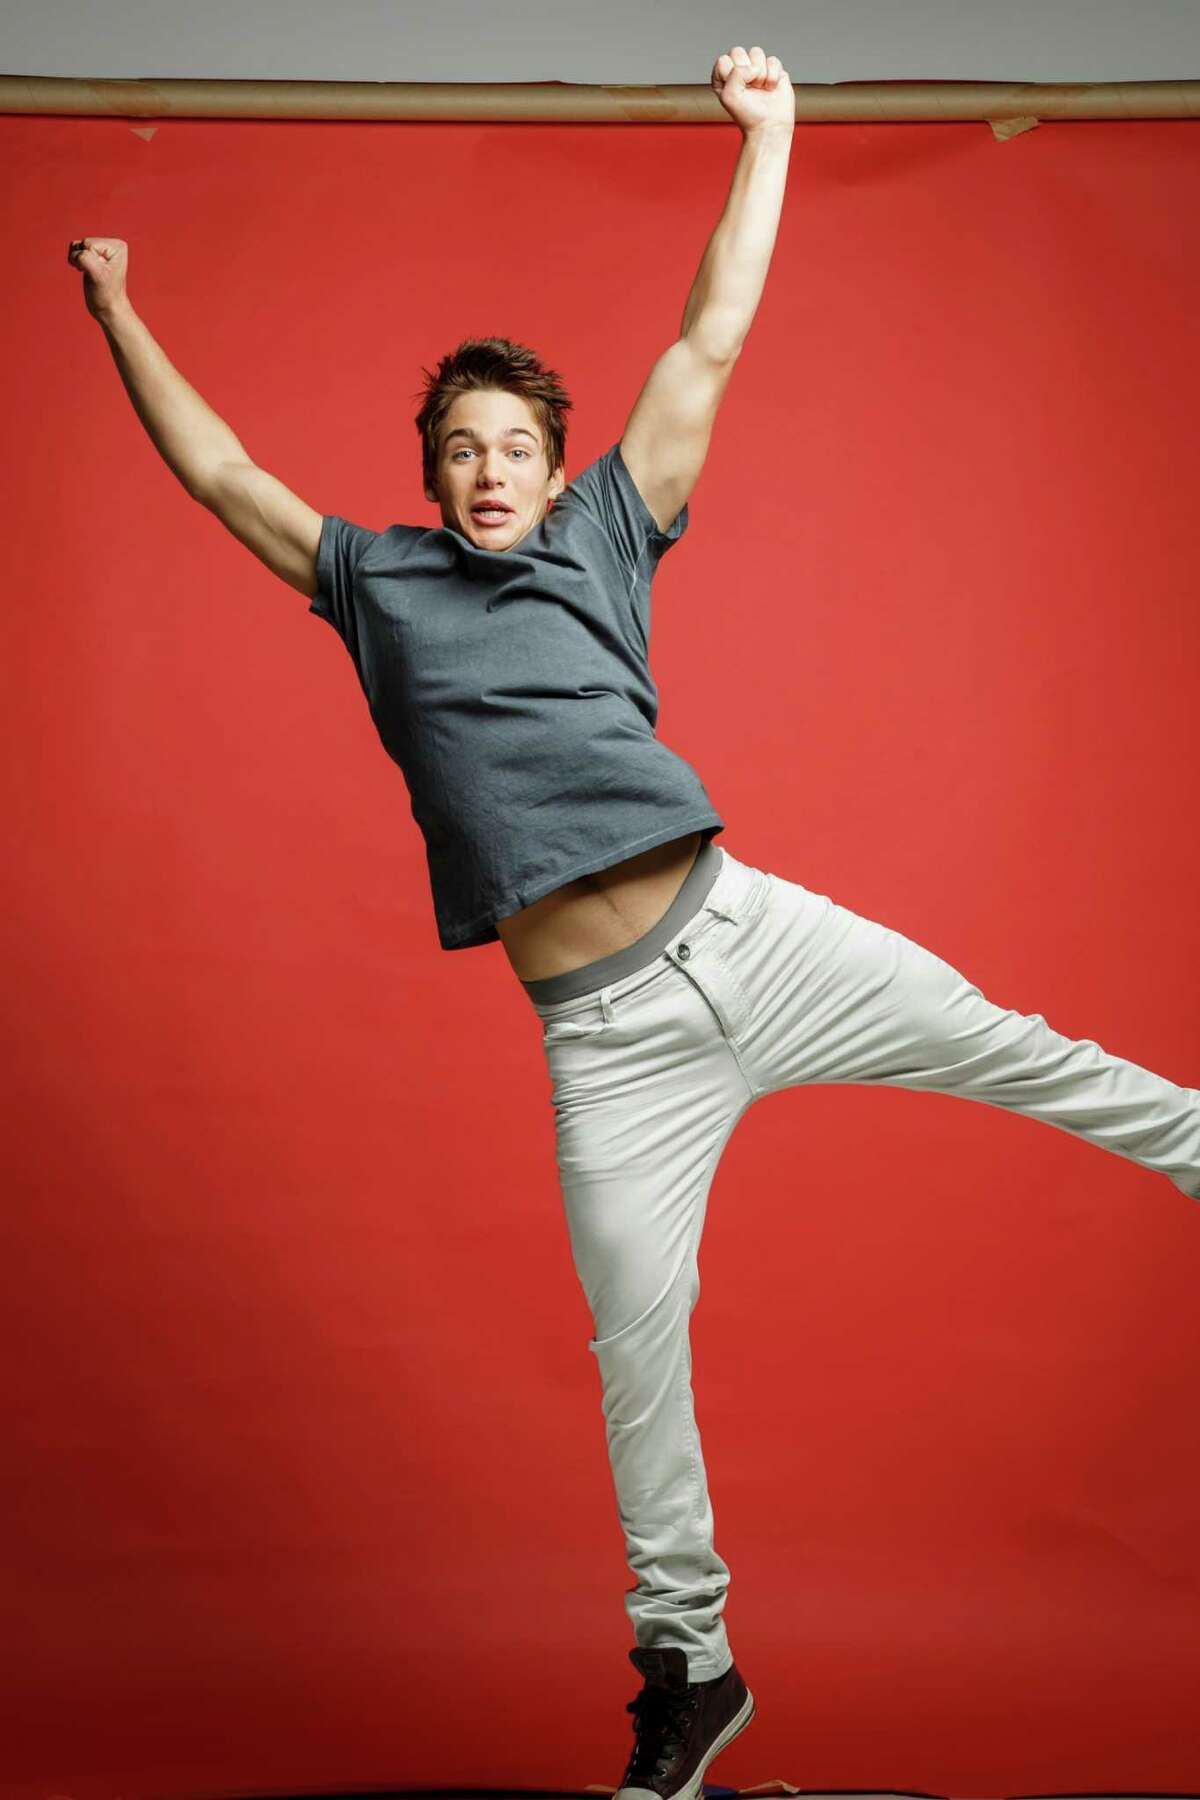 """Dylan Sprayberry, a young actor from Houston, poses for a photo in the Houston Chronicle Photo Studio, Friday, June 14, 2013, in Houston. Sprayberry who after six years of doing spots on various TV shows including Glee and iCarly, now appears on screen as the young Clark Kent in the new Superman film """"Man of Steel."""" ( Michael Paulsen / Houston Chronicle )"""